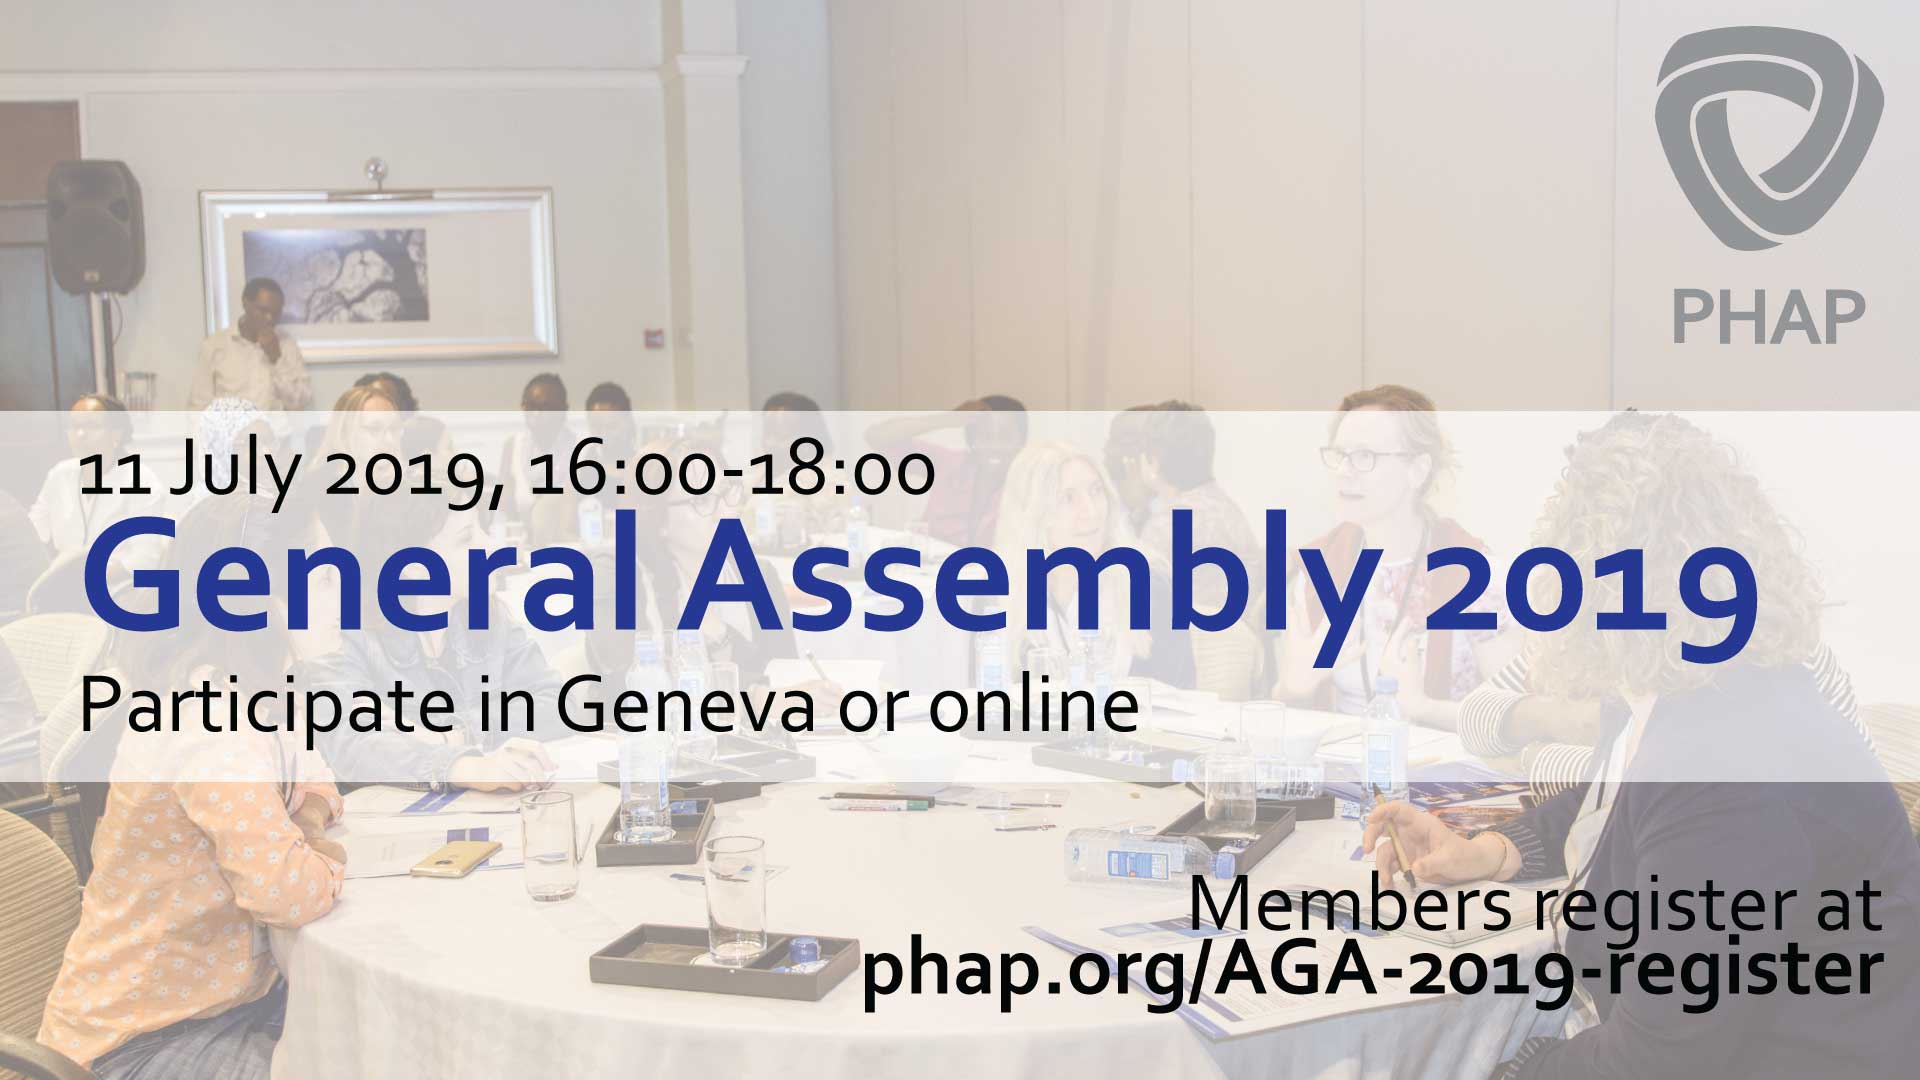 PHAP Annual General Assembly 2019